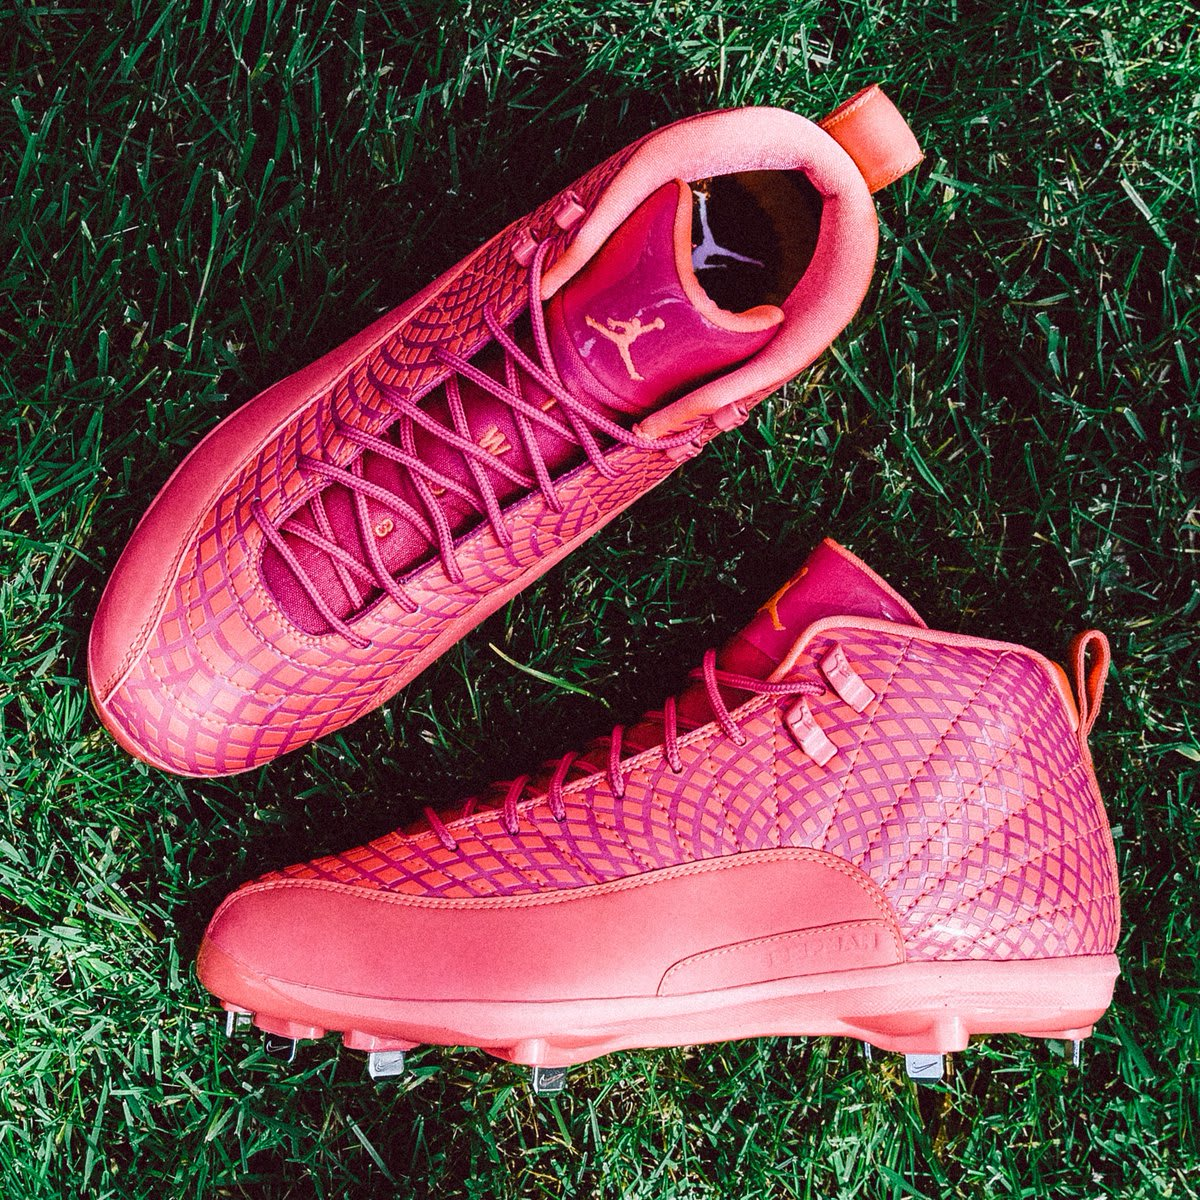 Air Jordan 12 Mother's Day Cleats